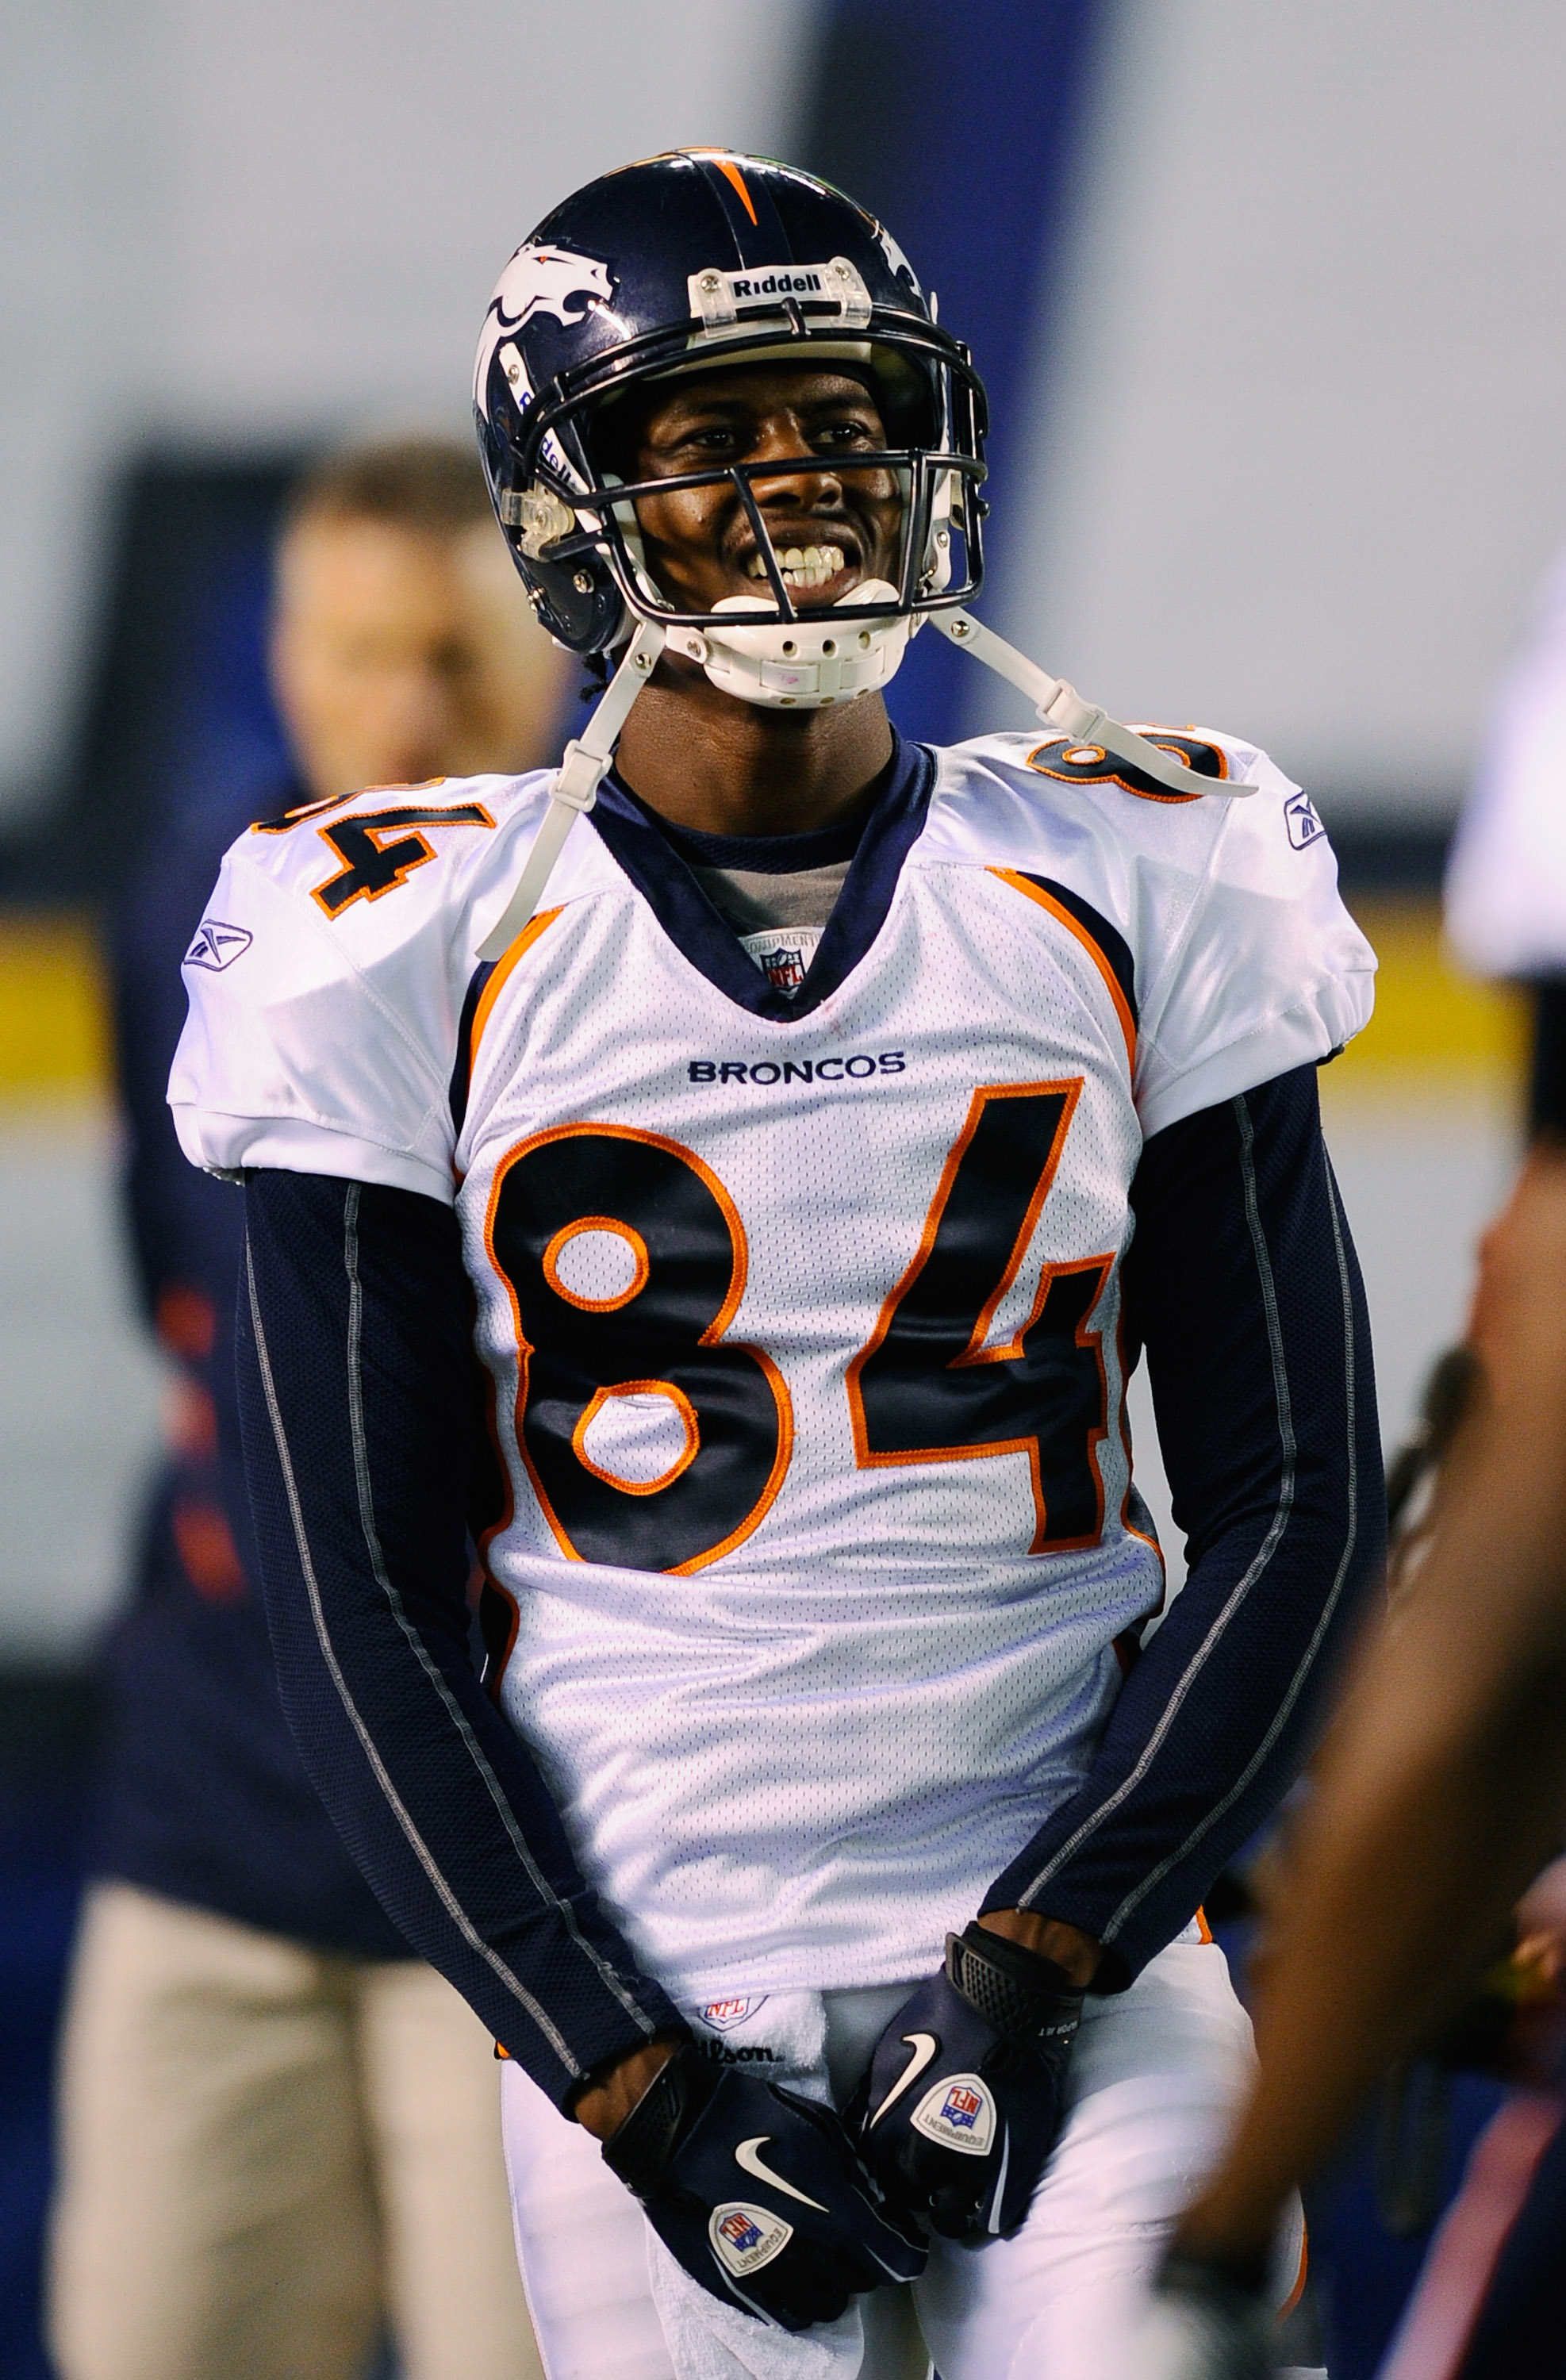 SAN DIEGO - NOVEMBER 22:  Wide receiver Brandon Lloyd #84 of the Denver Broncos warms up prior to the start of the football game against San Diego Chargers at Qualcomm Stadium on November 22, 2010 in San Diego, California.  (Photo by Kevork Djansezian/Get